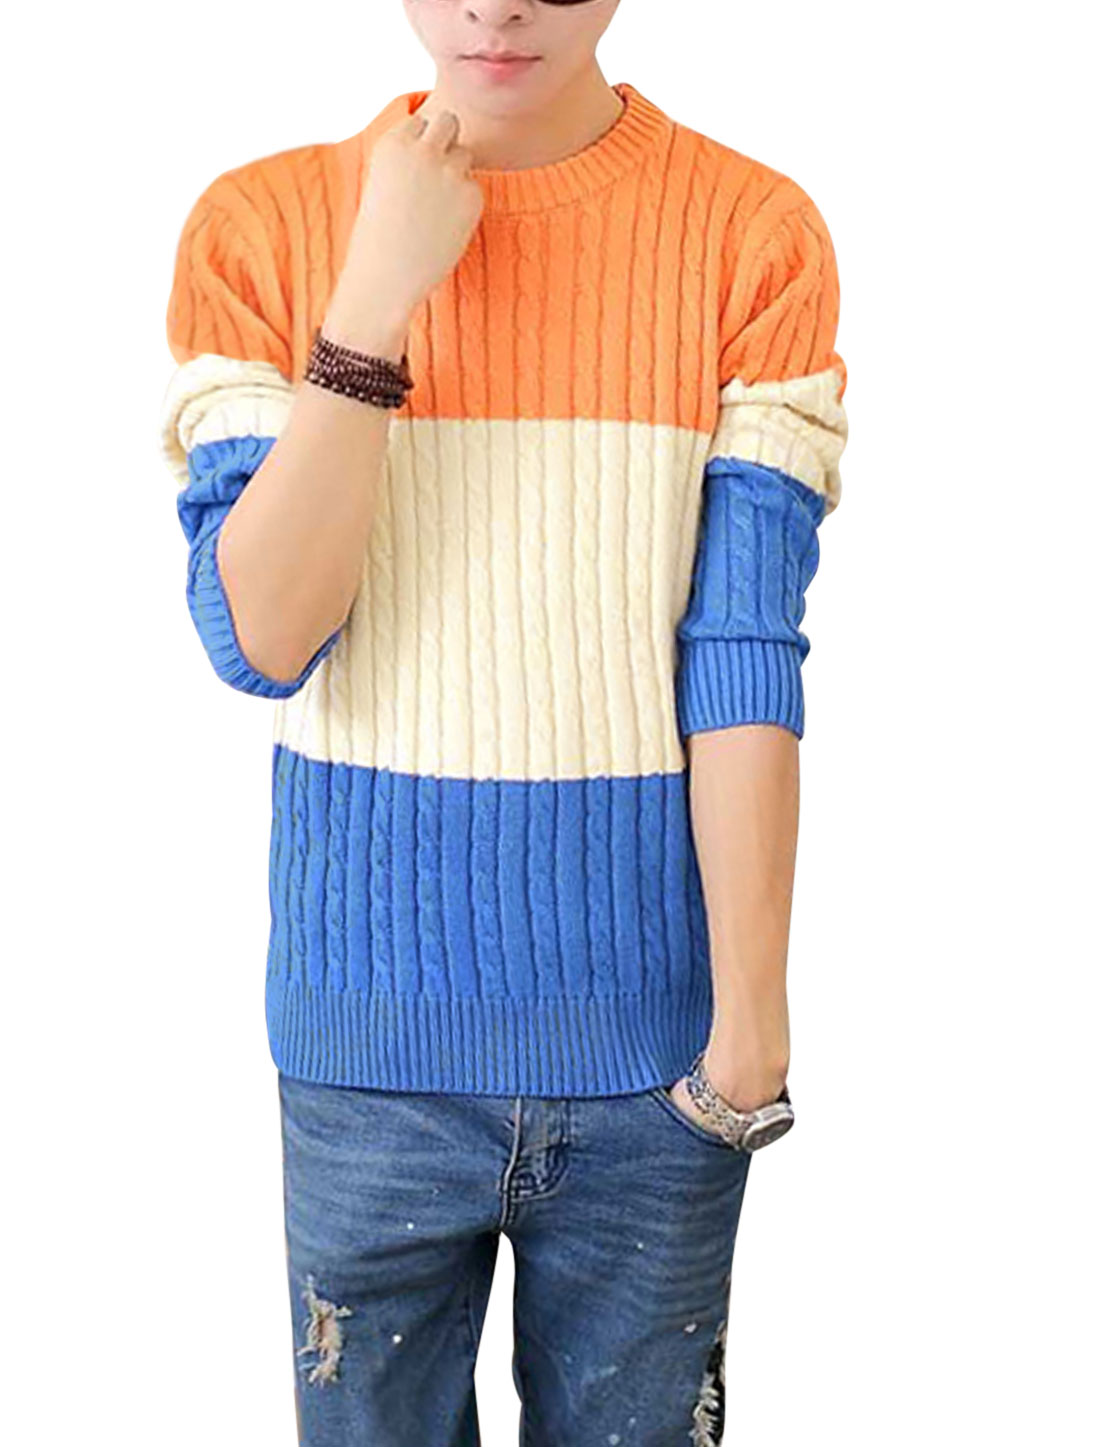 Men Cable Rib Knit Design Contrast Color Colorblock Casual Sweater Orange Blue S